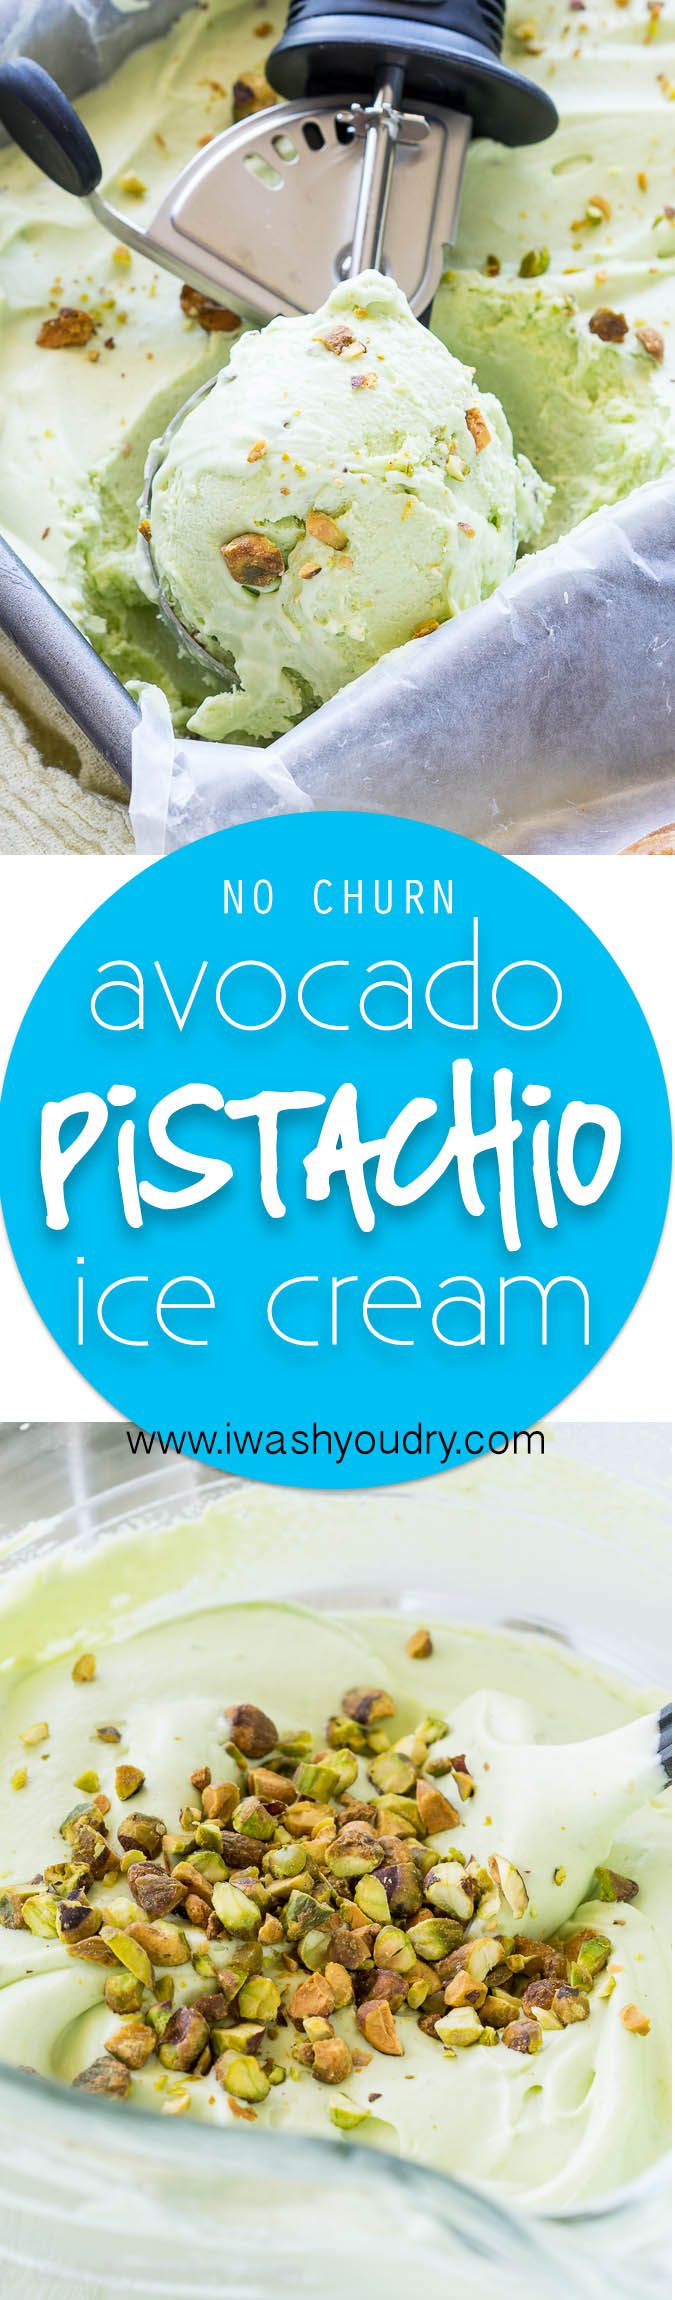 Wow! you can not believe how creamy this NO CHURN Avocado Pistachio Ice Cream is! You can't taste the avocado, it just makes the ice cream extra creamy!